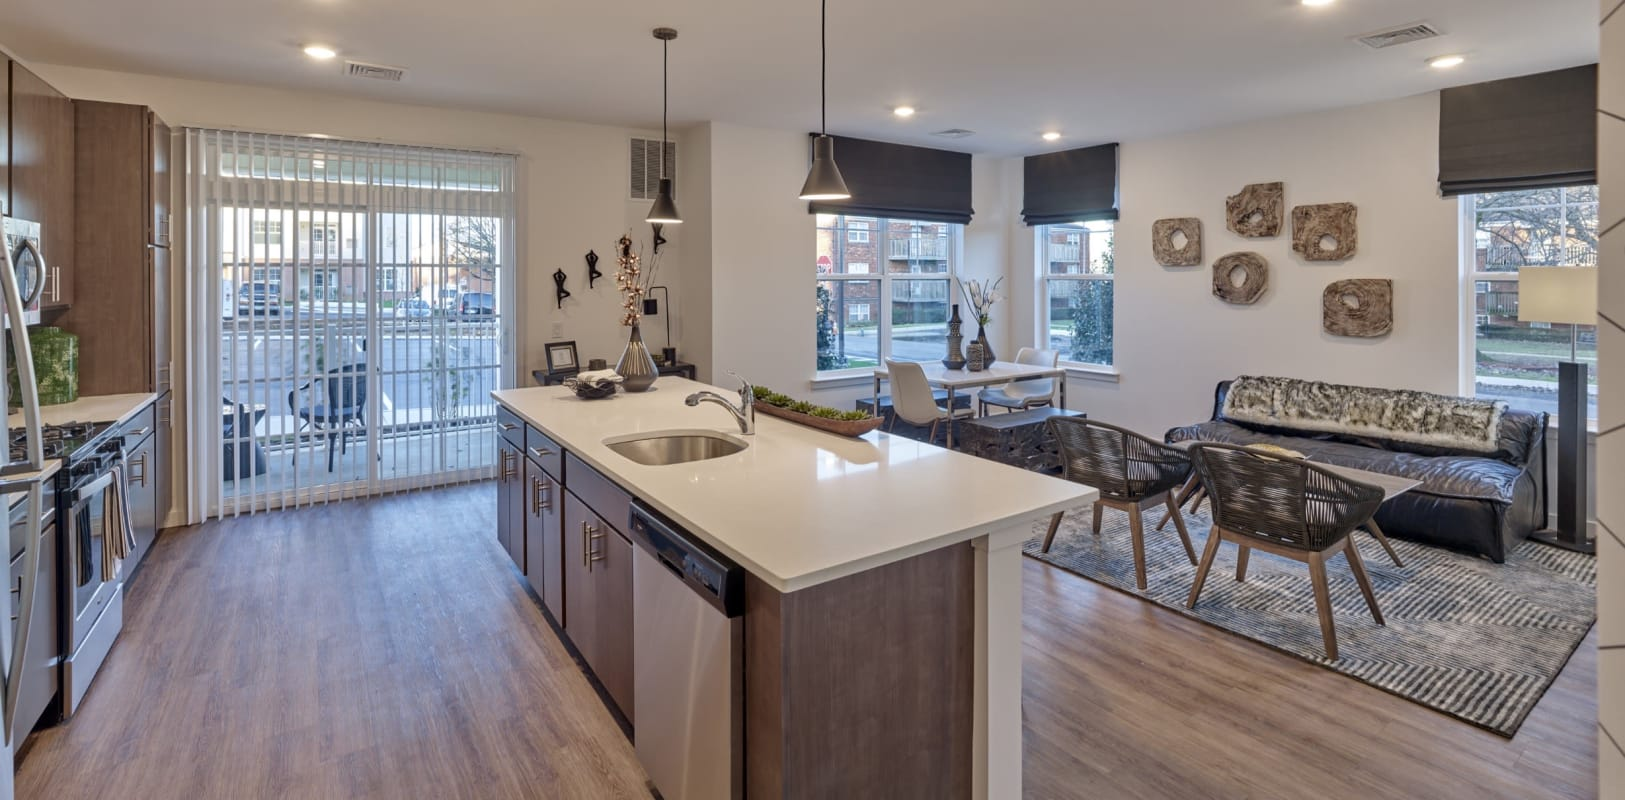 A kitchen island and a sliding glass door to the patio of a model home at The Mills at Lehigh in Bethlehem, Pennsylvania